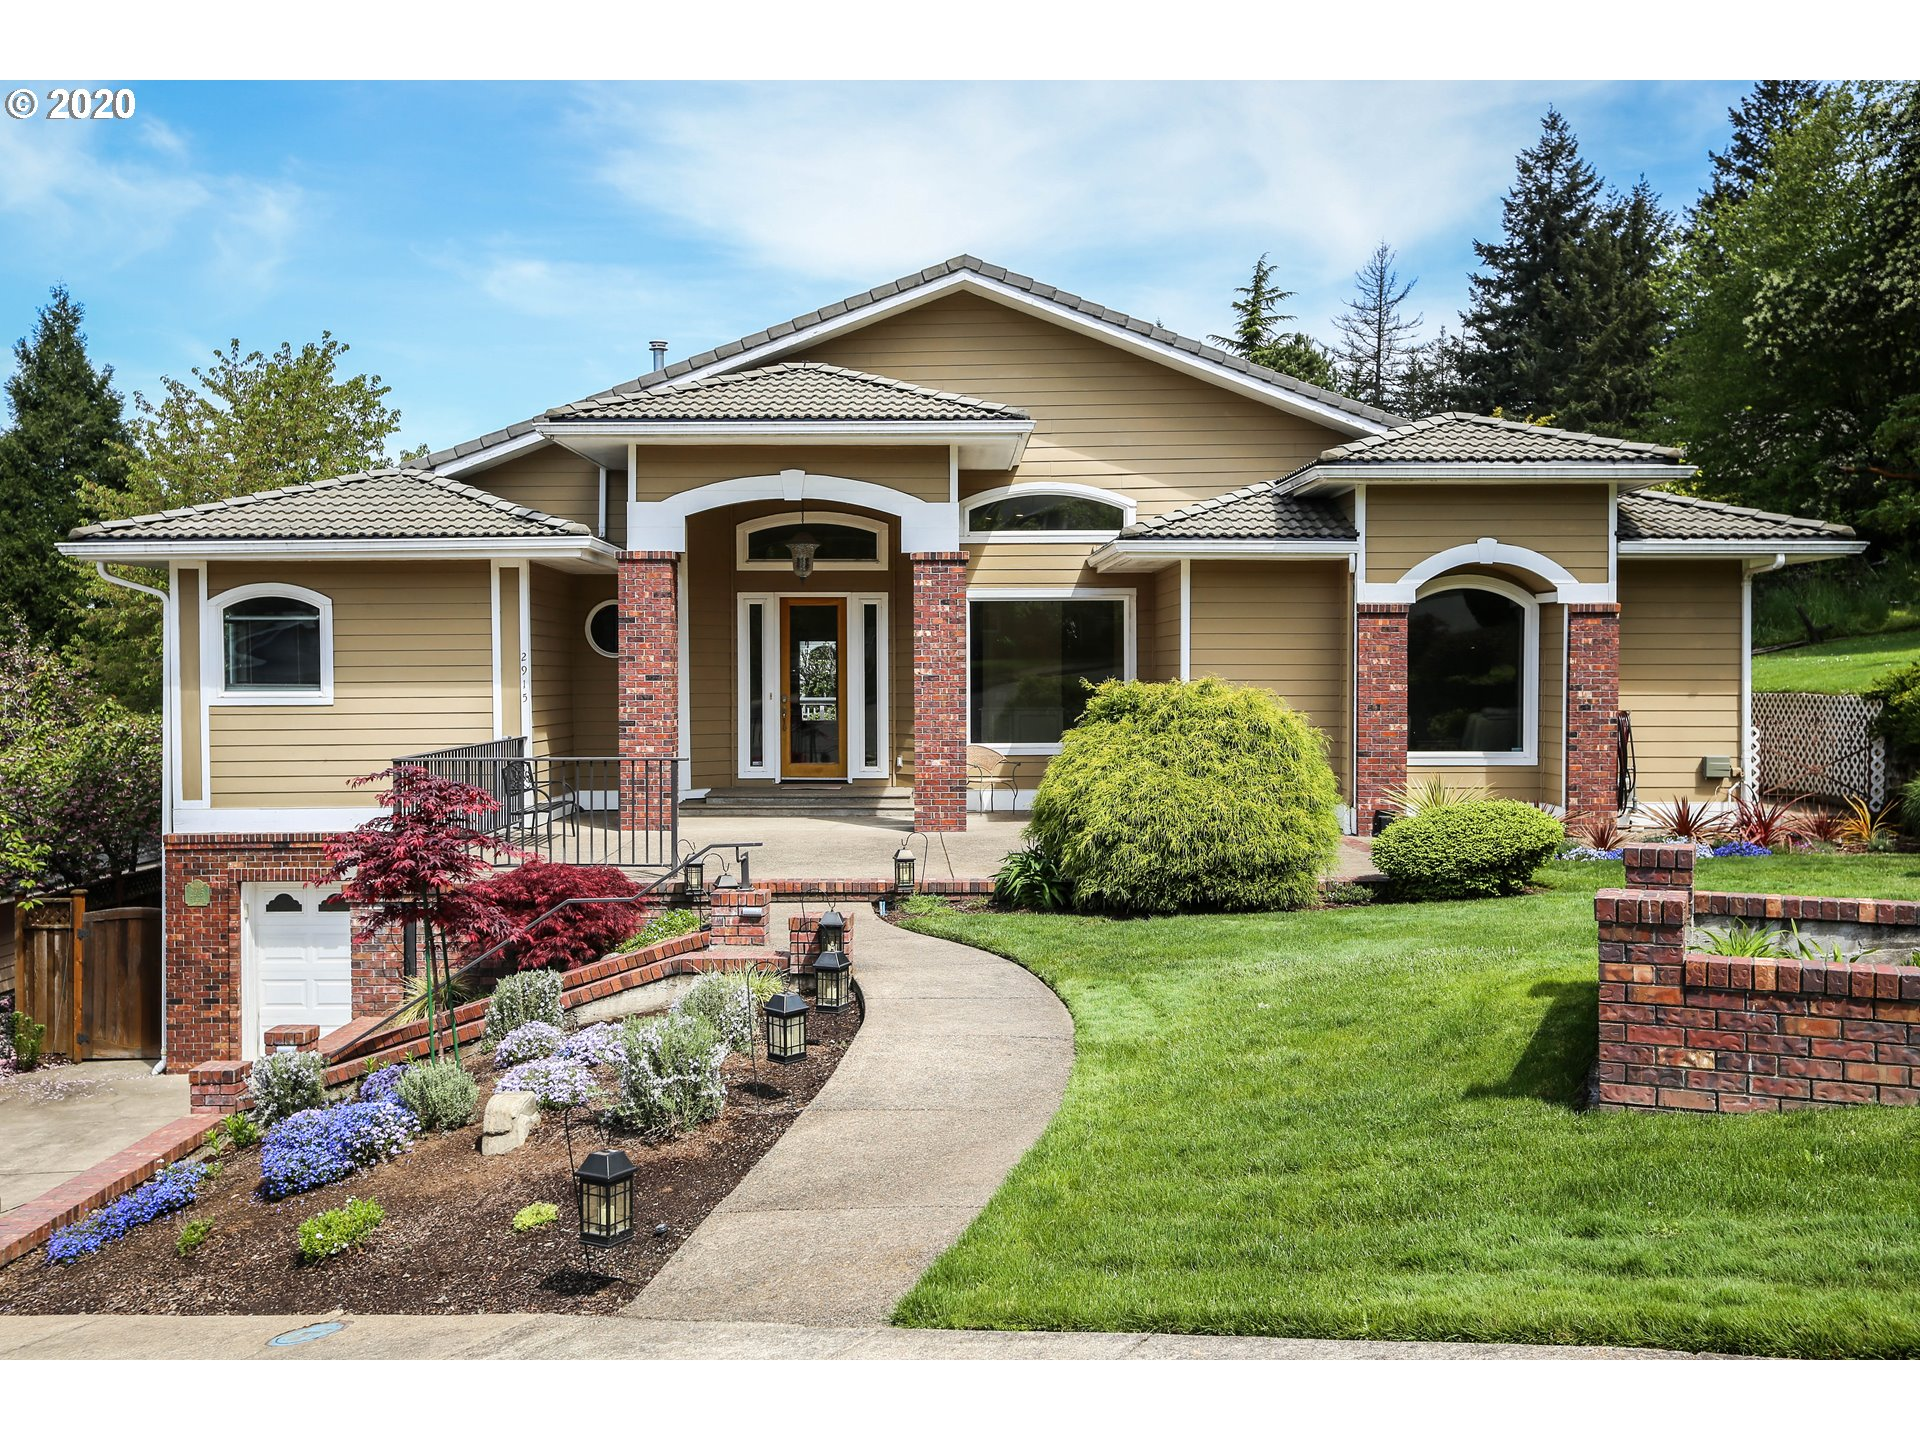 Stunning E Eugene Home. 5bed, 5bath, 5492 Sq ft, 2 level. Main level hosts maple wood floors & high ceilings, master suite with balcony access, fireplace, window seat, walk-in his & her closets, walk-in shower, jetted tub, gourmet kitchen w/ granite, double oven, gas cooktop, pantry & buttlers pantry. Eating area + formal dining room. Finished basement comes with another kitchen, living & dining room, bedrooms, baths, storage & garages. Beautiful back yard, Lrge covered patio/entertaining space